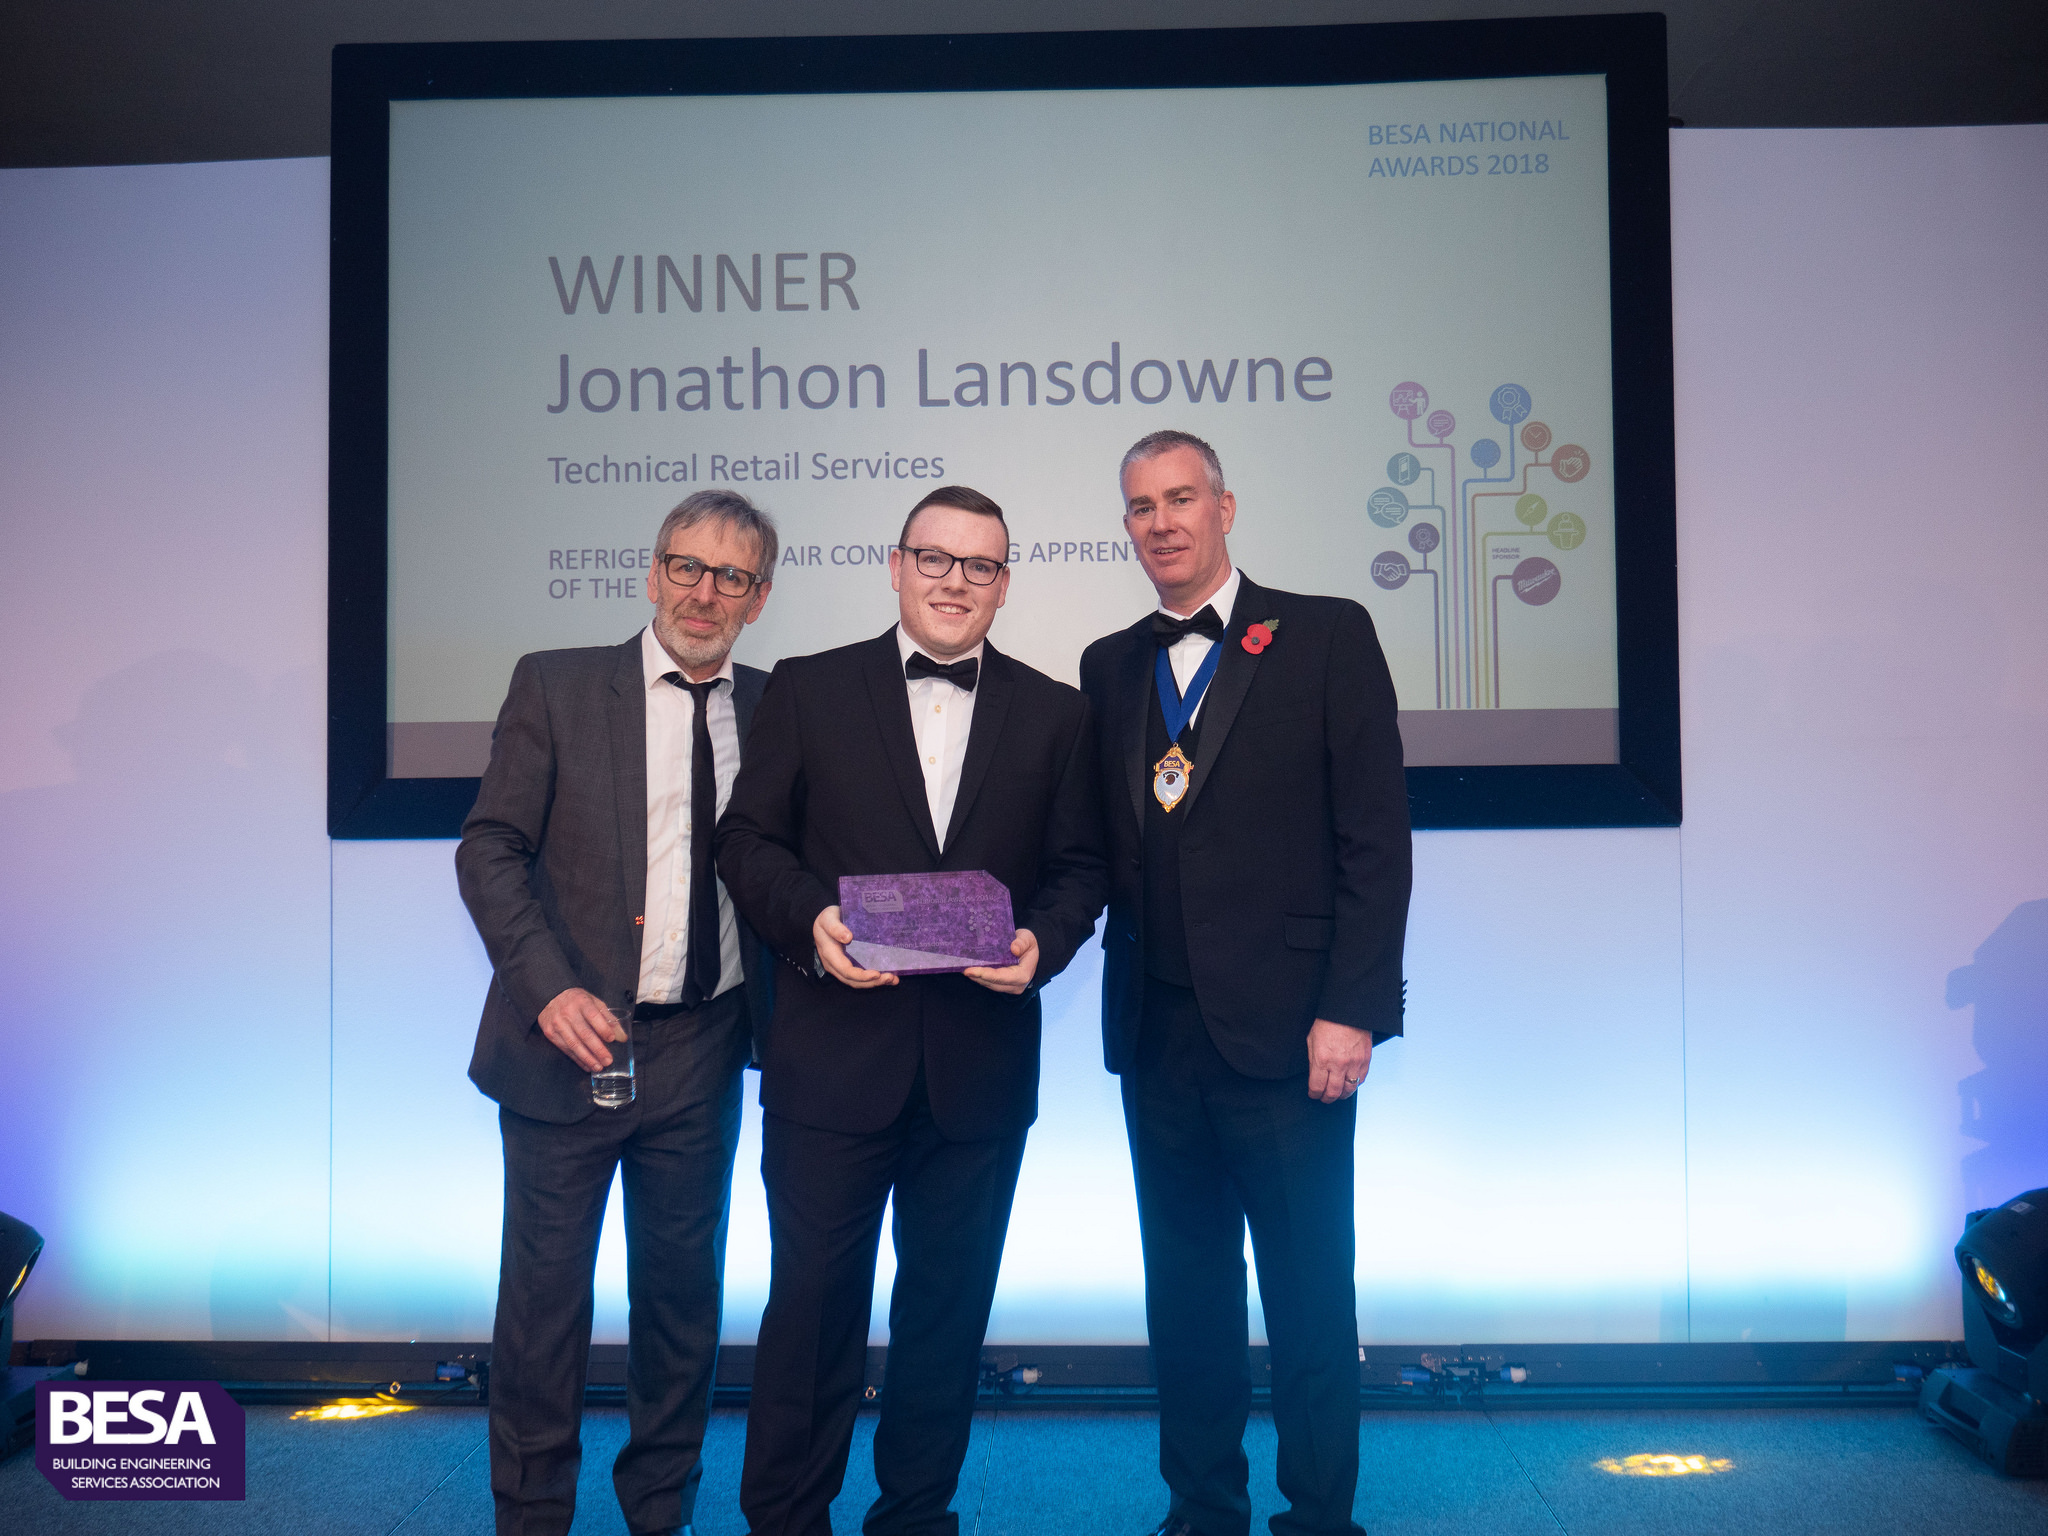 Jonathan Lansdowne, winner of Refrigeration & Air Conditioning Apprentice of the Year